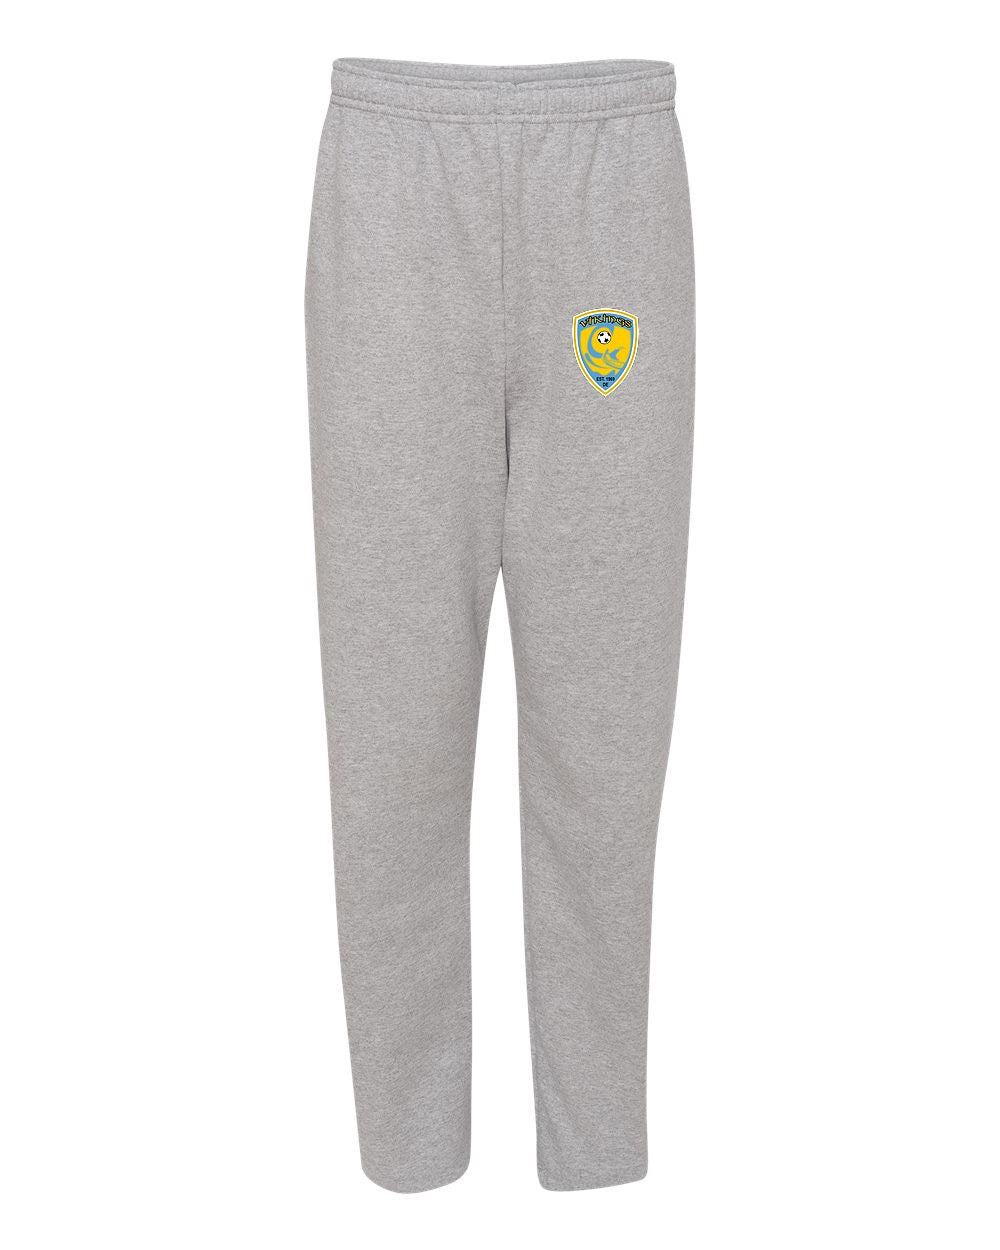 Jerzees NuBlend Open Bottom Sweatpants w/Soccer Seal